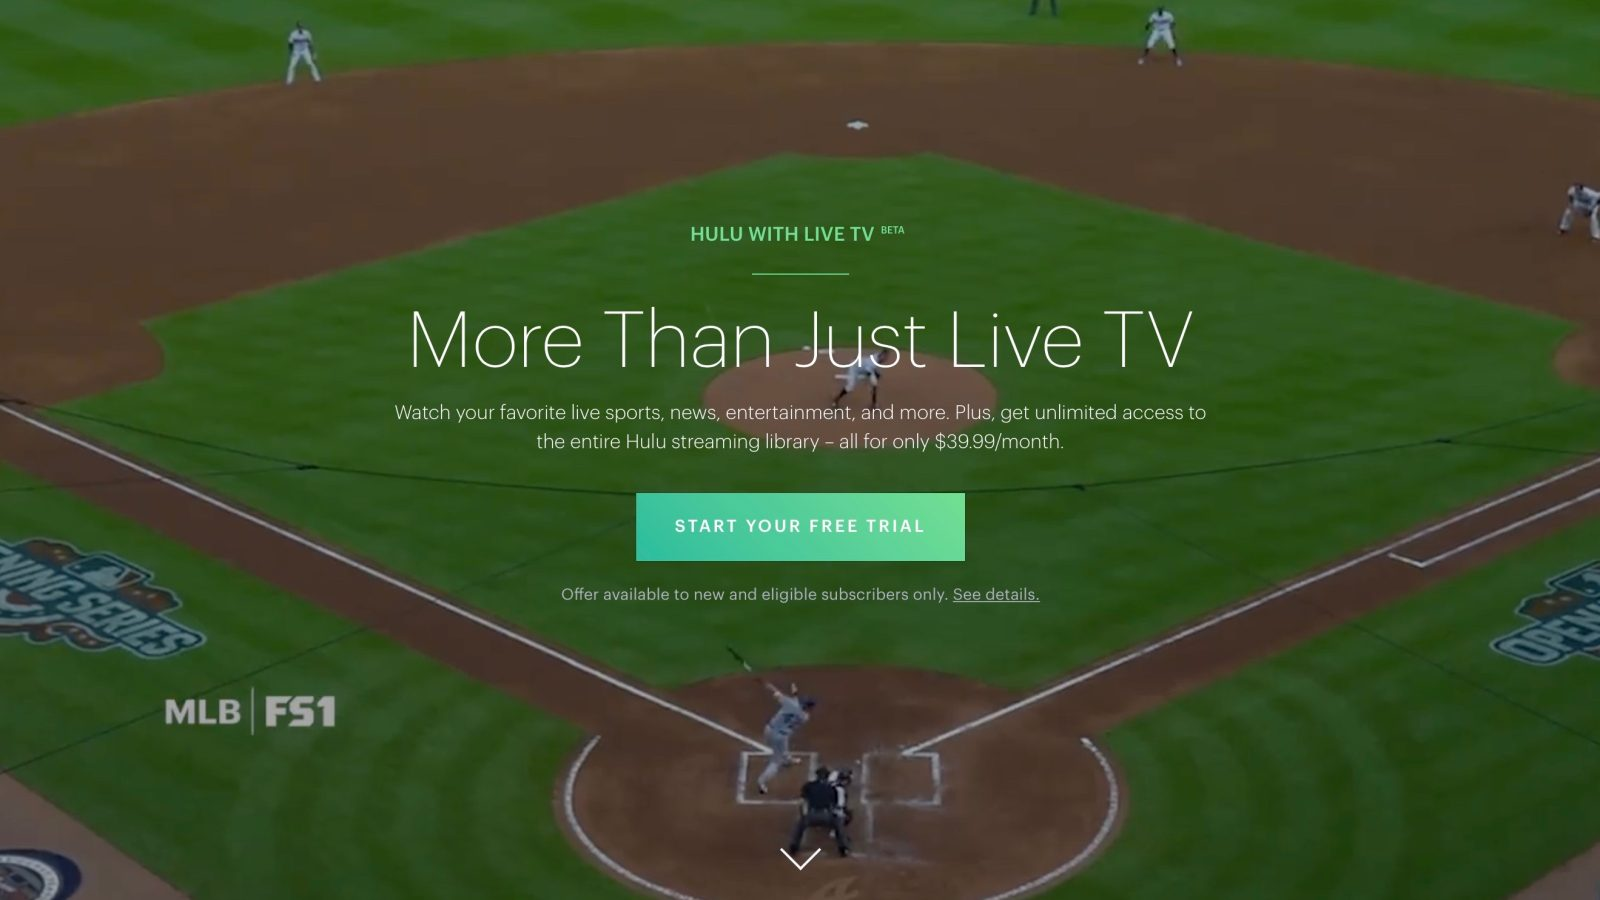 Hulu Live TV adds The CW live channel in addition to previously